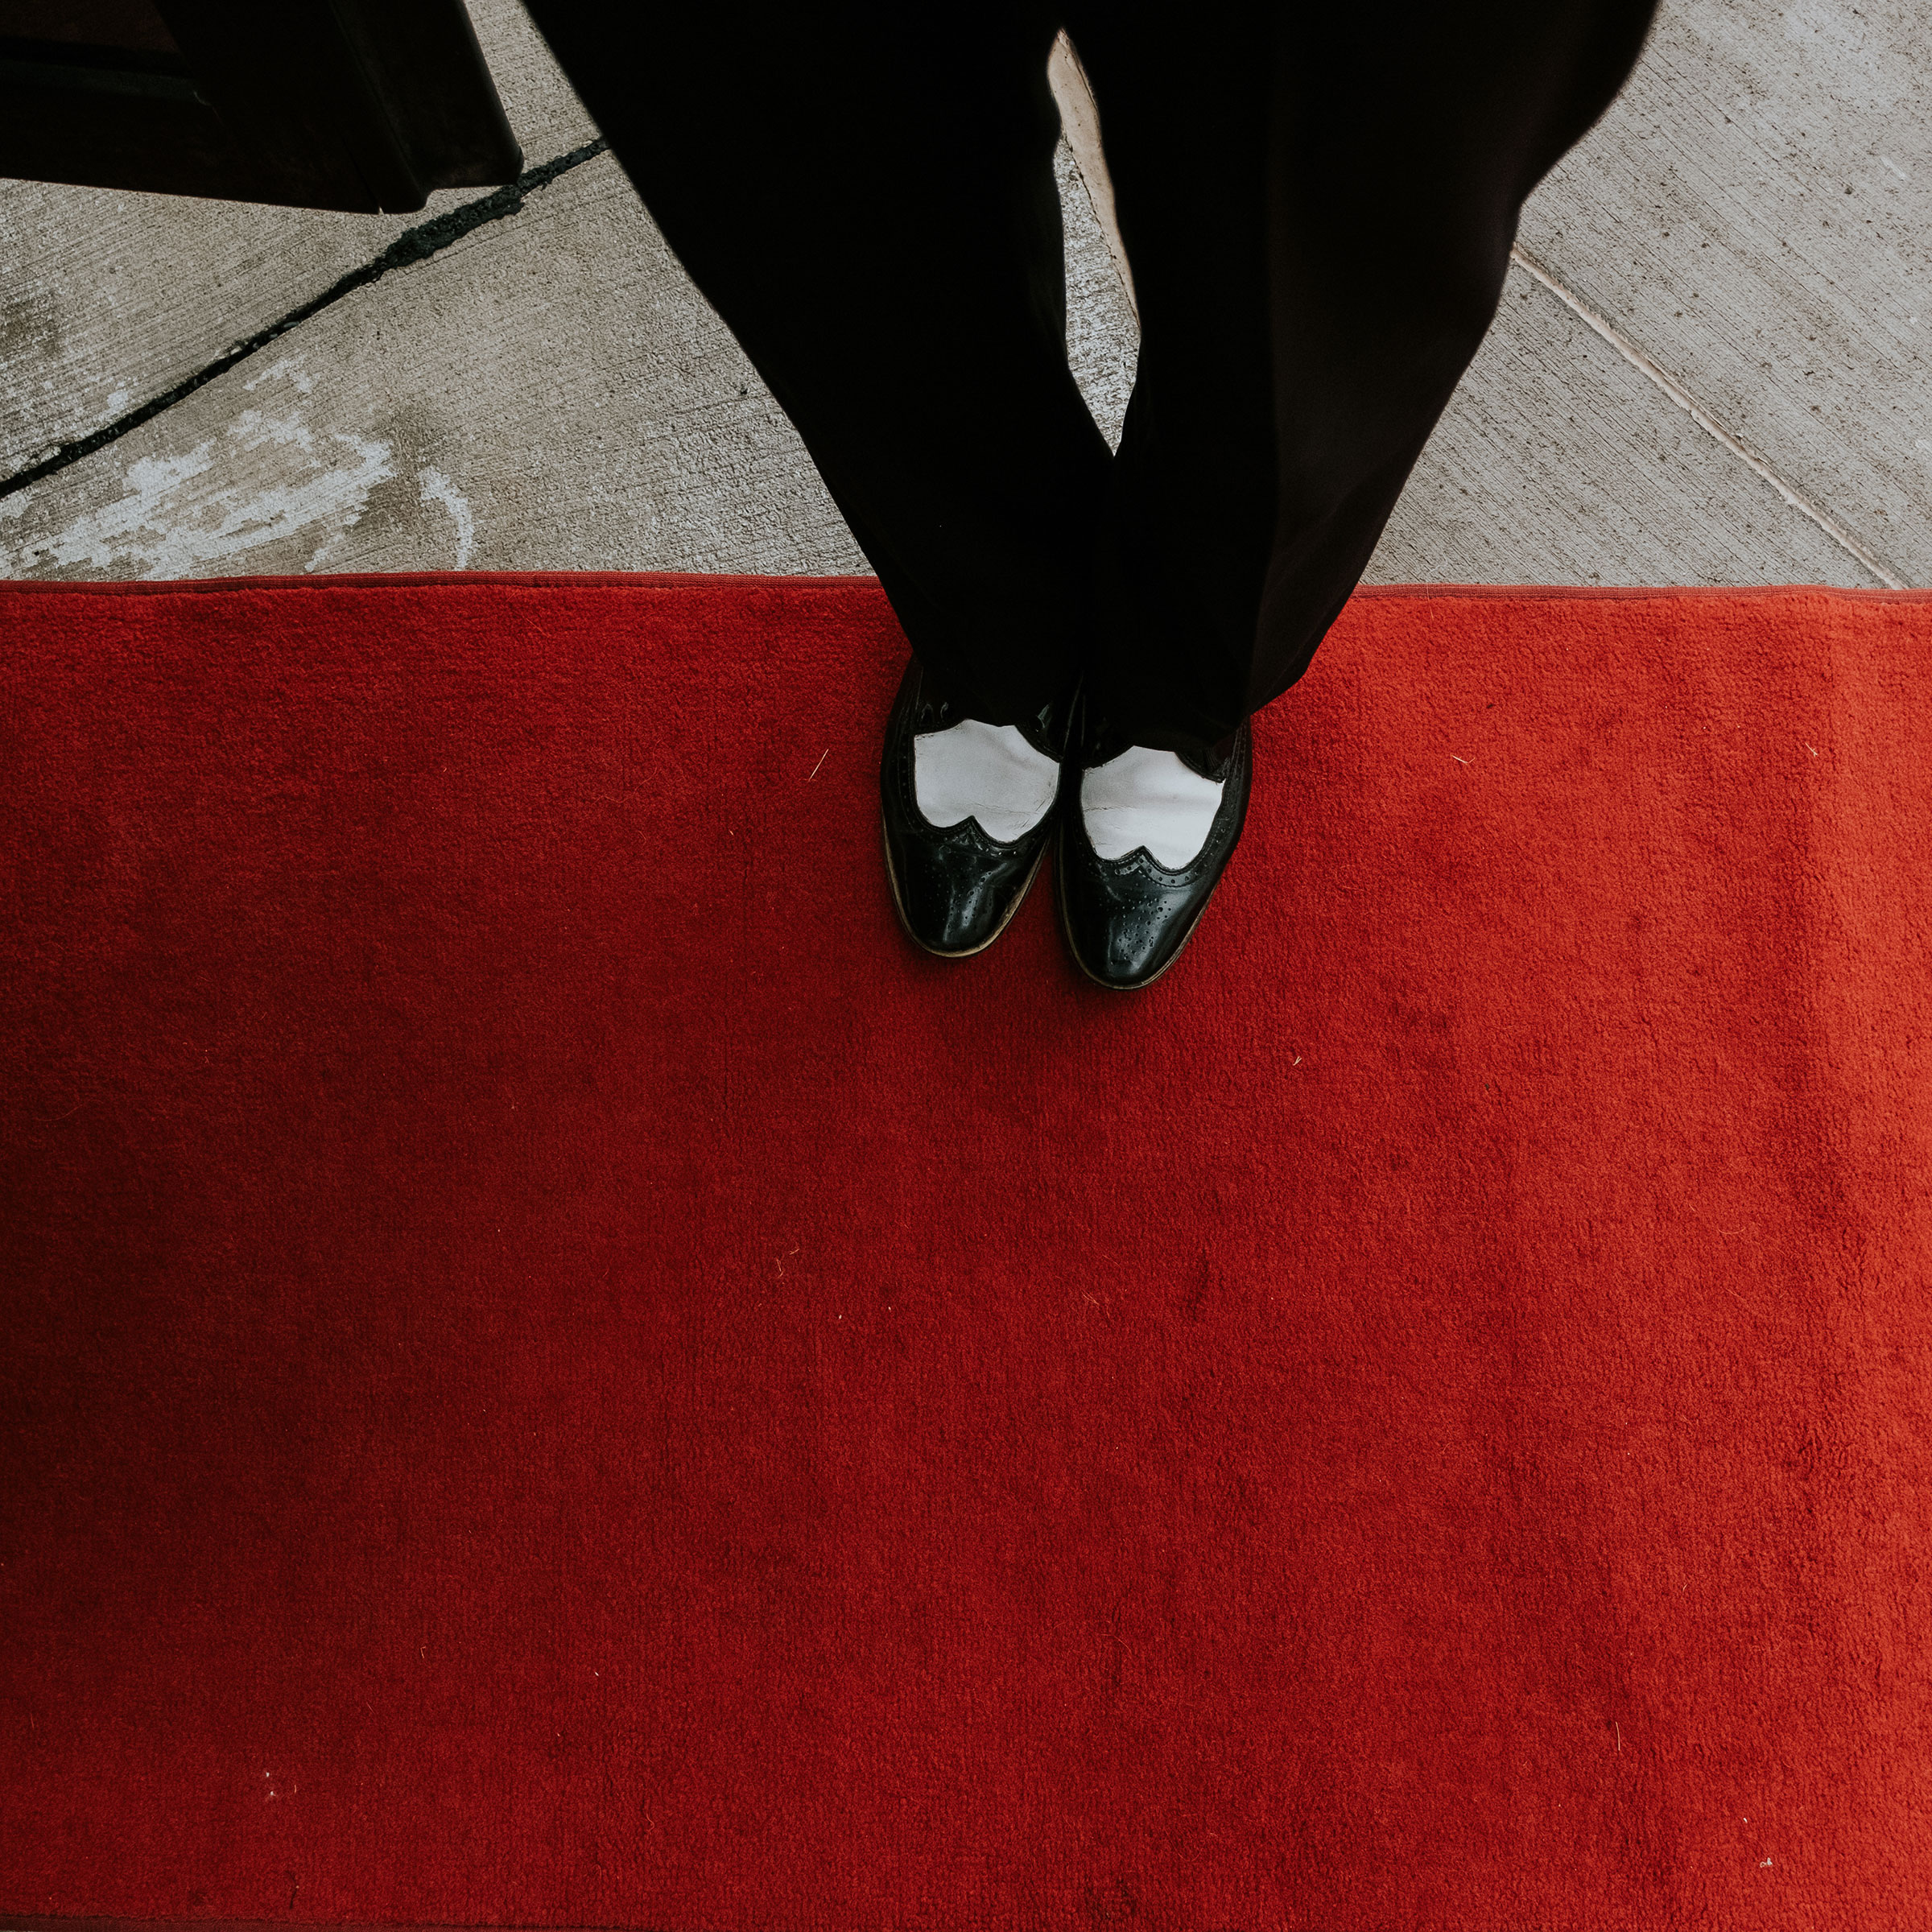 bus-driver-shoes-on-red-carpet-pella-plaza-desmoines-iowa-raelyn-ramey-photography.jpg